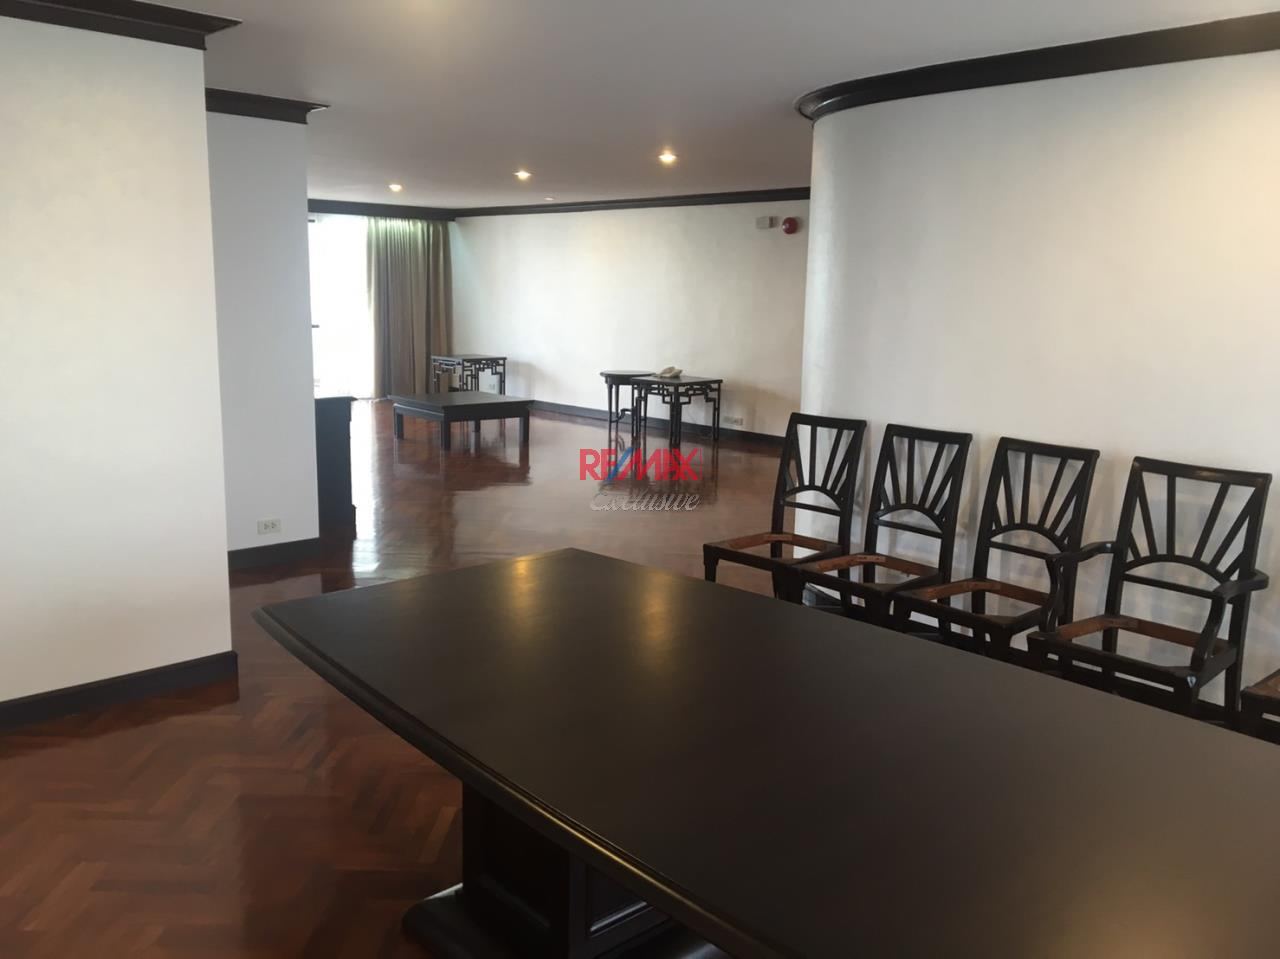 RE/MAX Exclusive Agency's Hawaii Tower, 4 Bedroom, 420 Sqm., Fully-Furnished, Special Price for RENT !!! 7